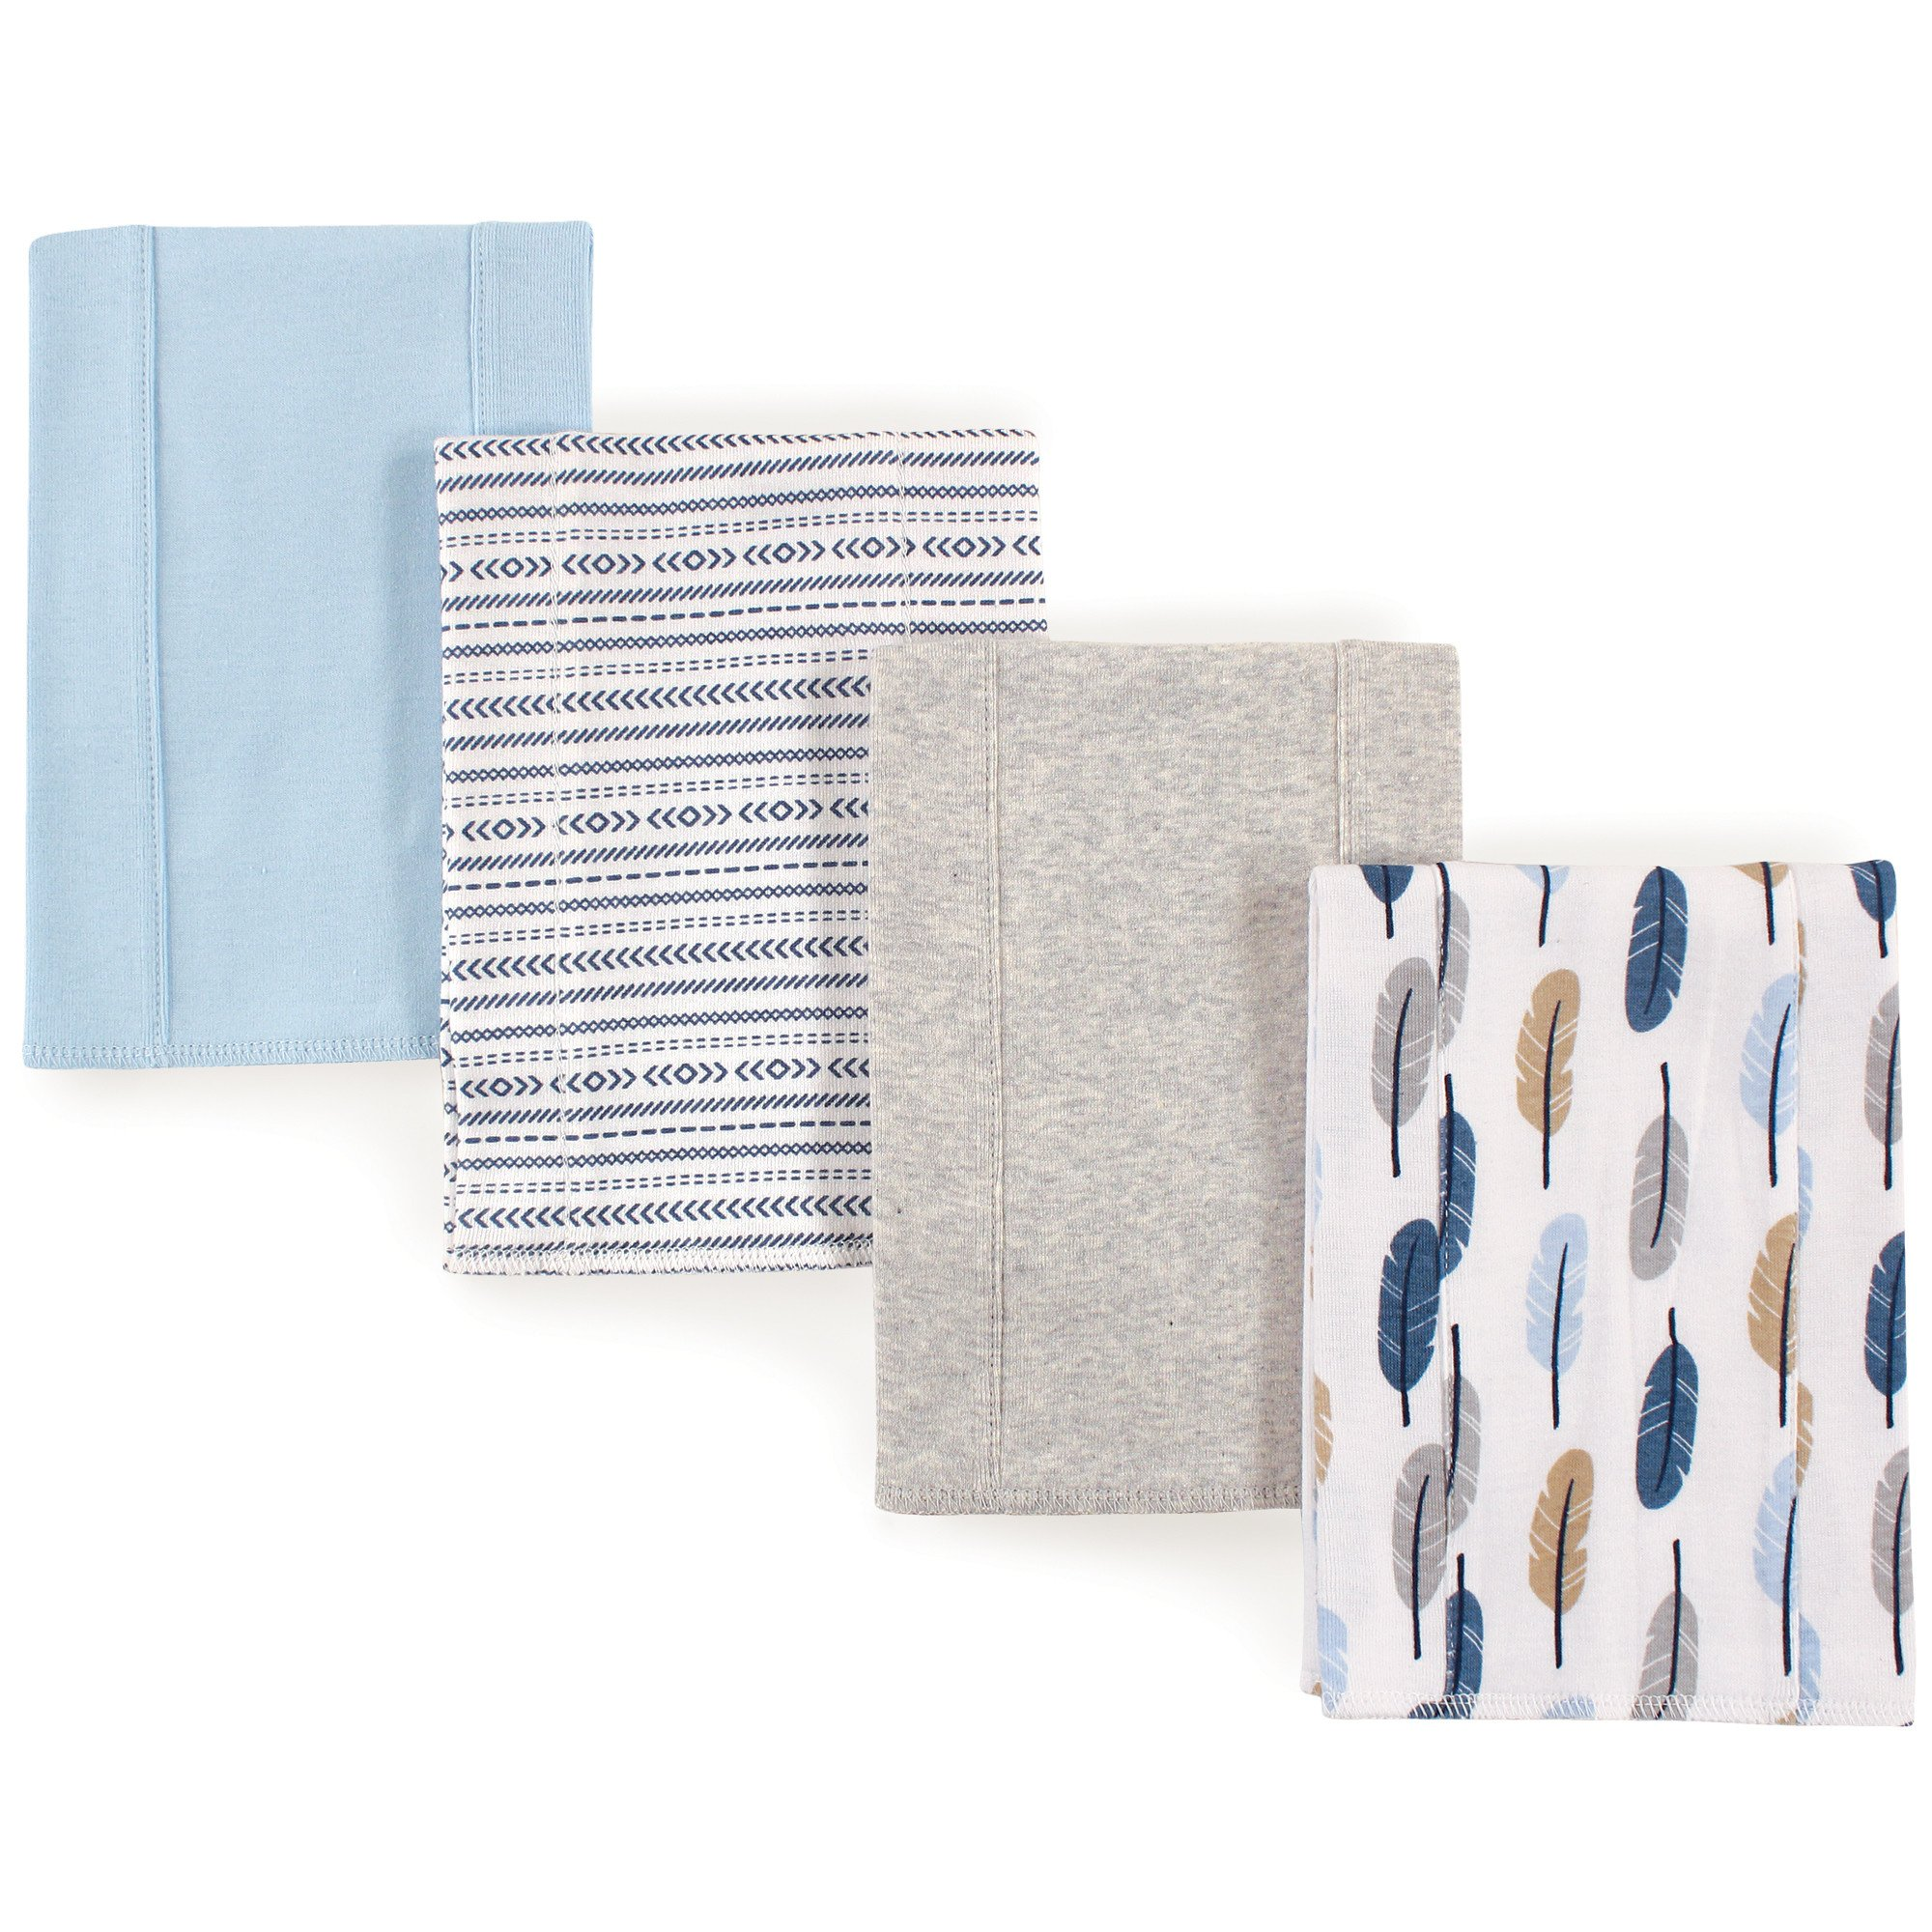 Touched by Nature Baby Organic Cotton Burp Cloths, Blue Feathers 4Pk, One Size by Touched by Nature